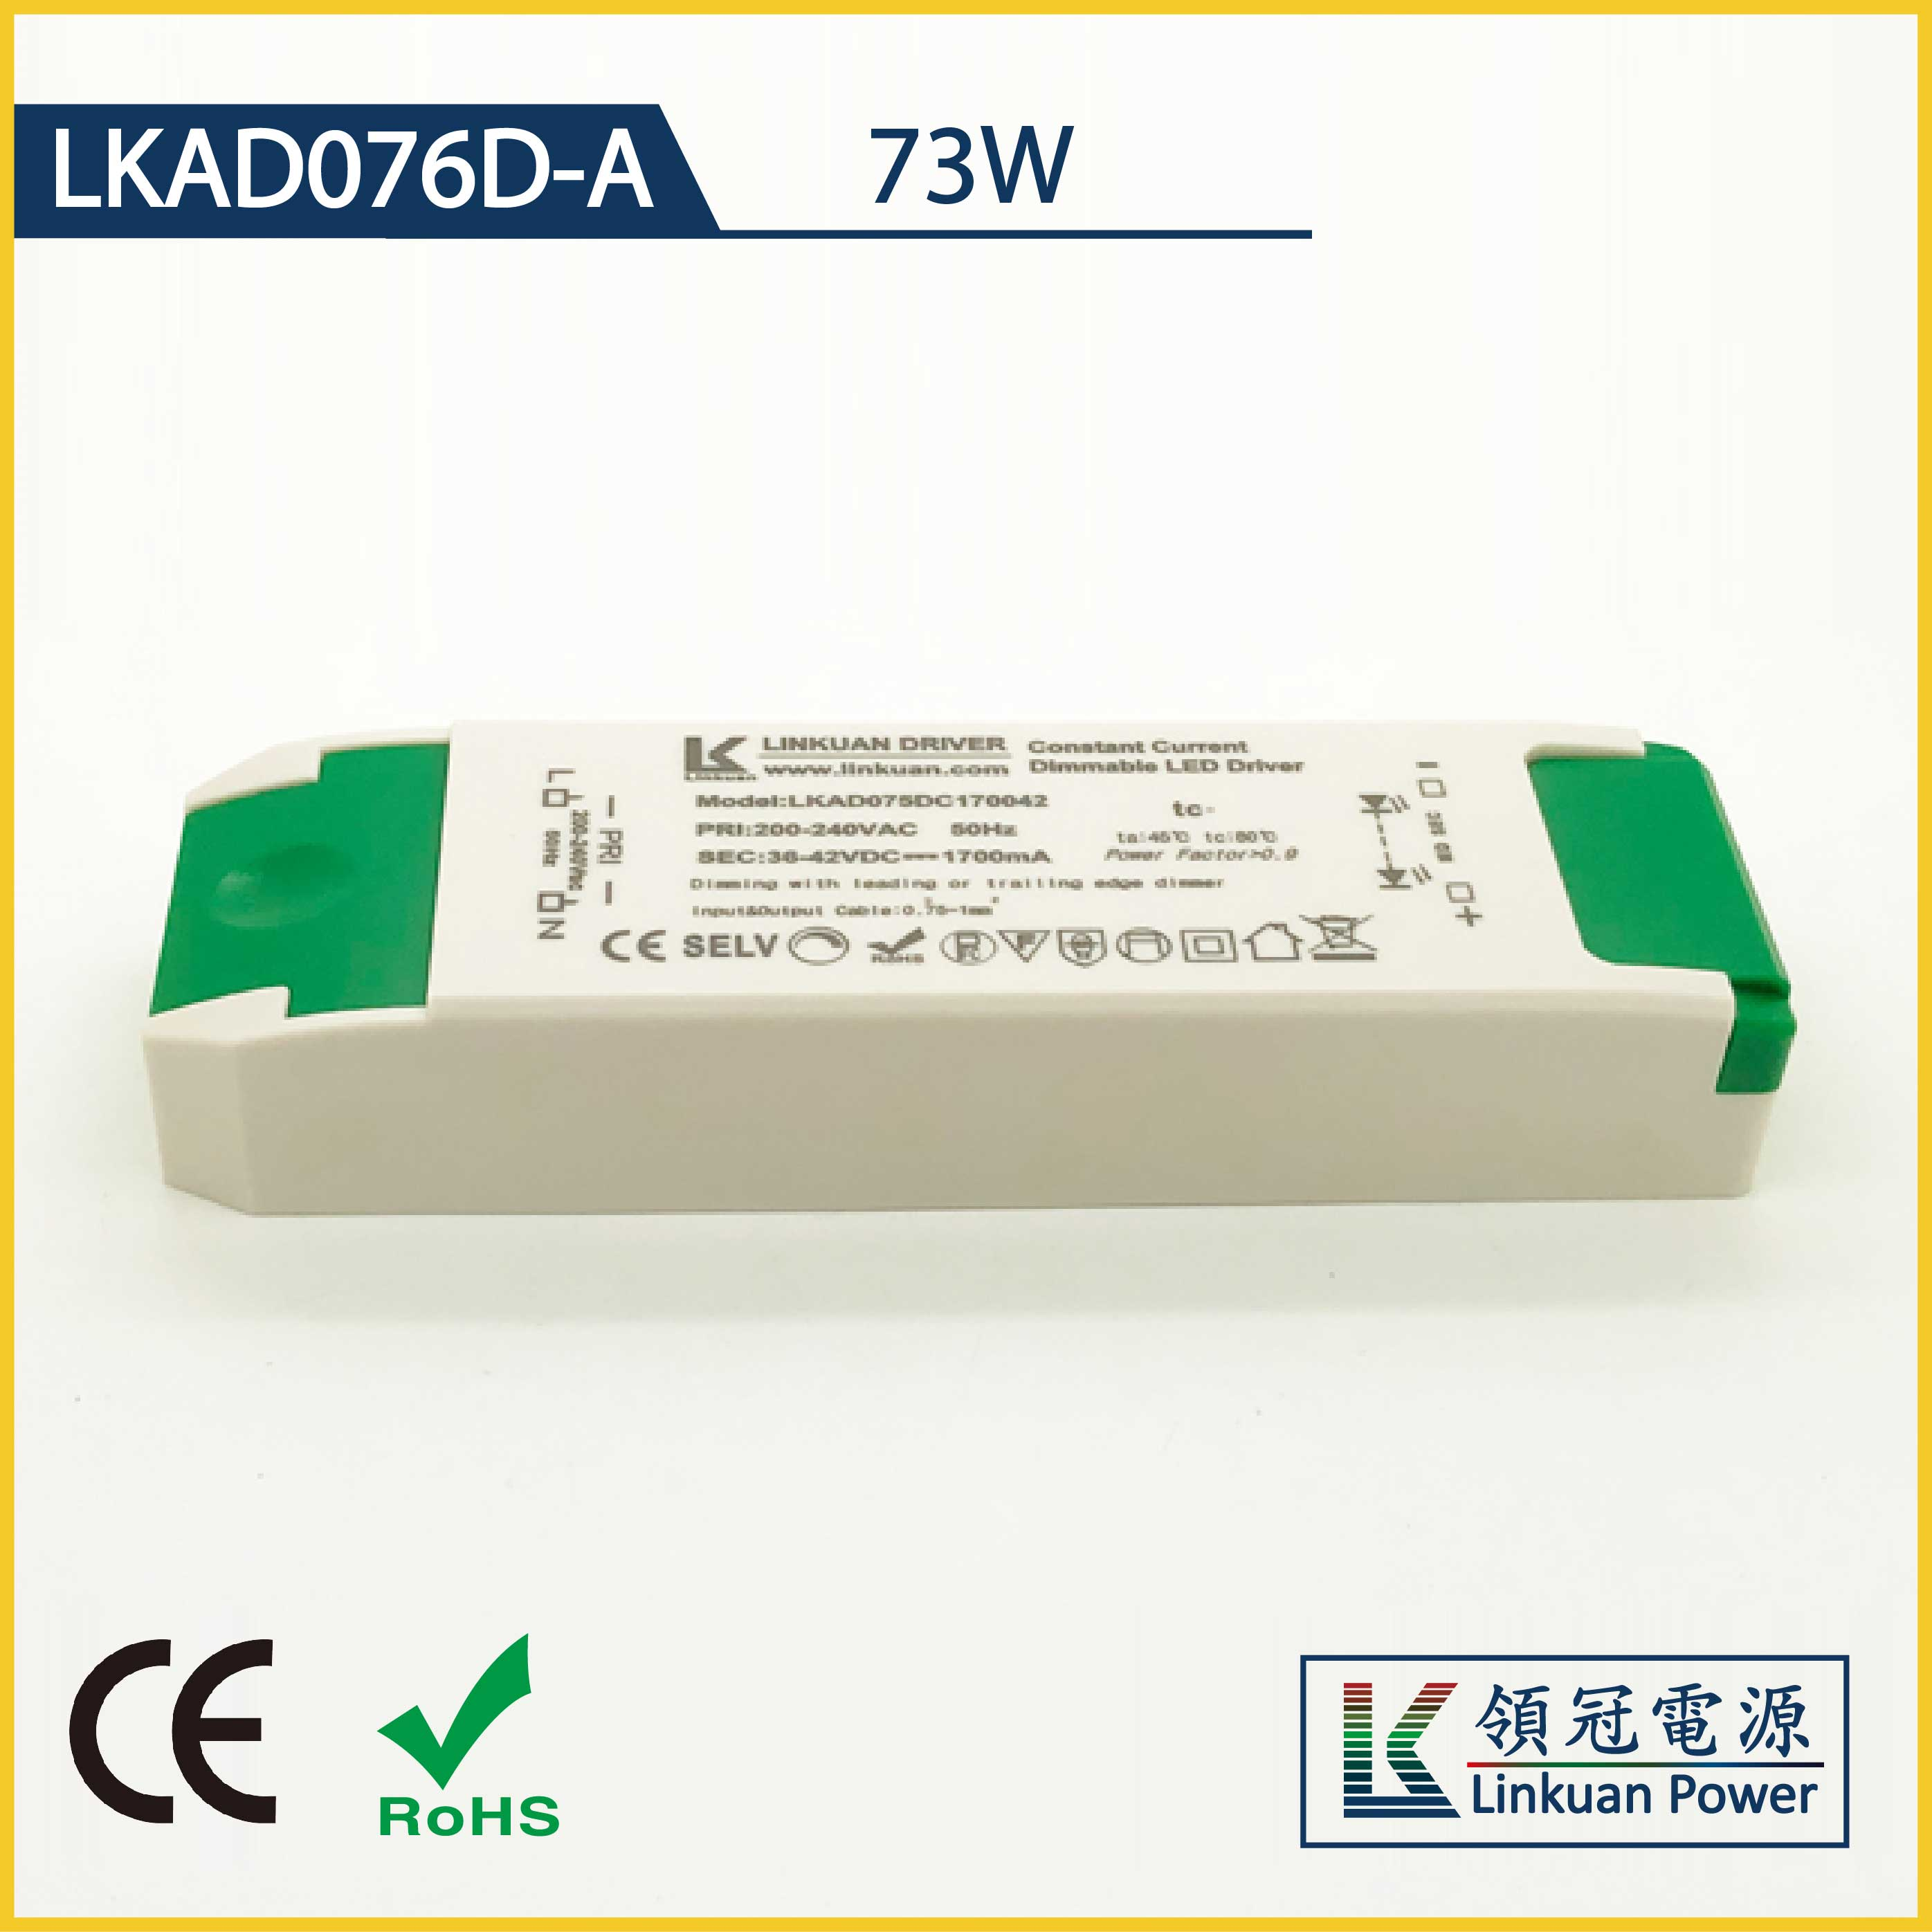 LKAD076D-A 73W 5-42V 1750mA CCT Adjusting LED drivers